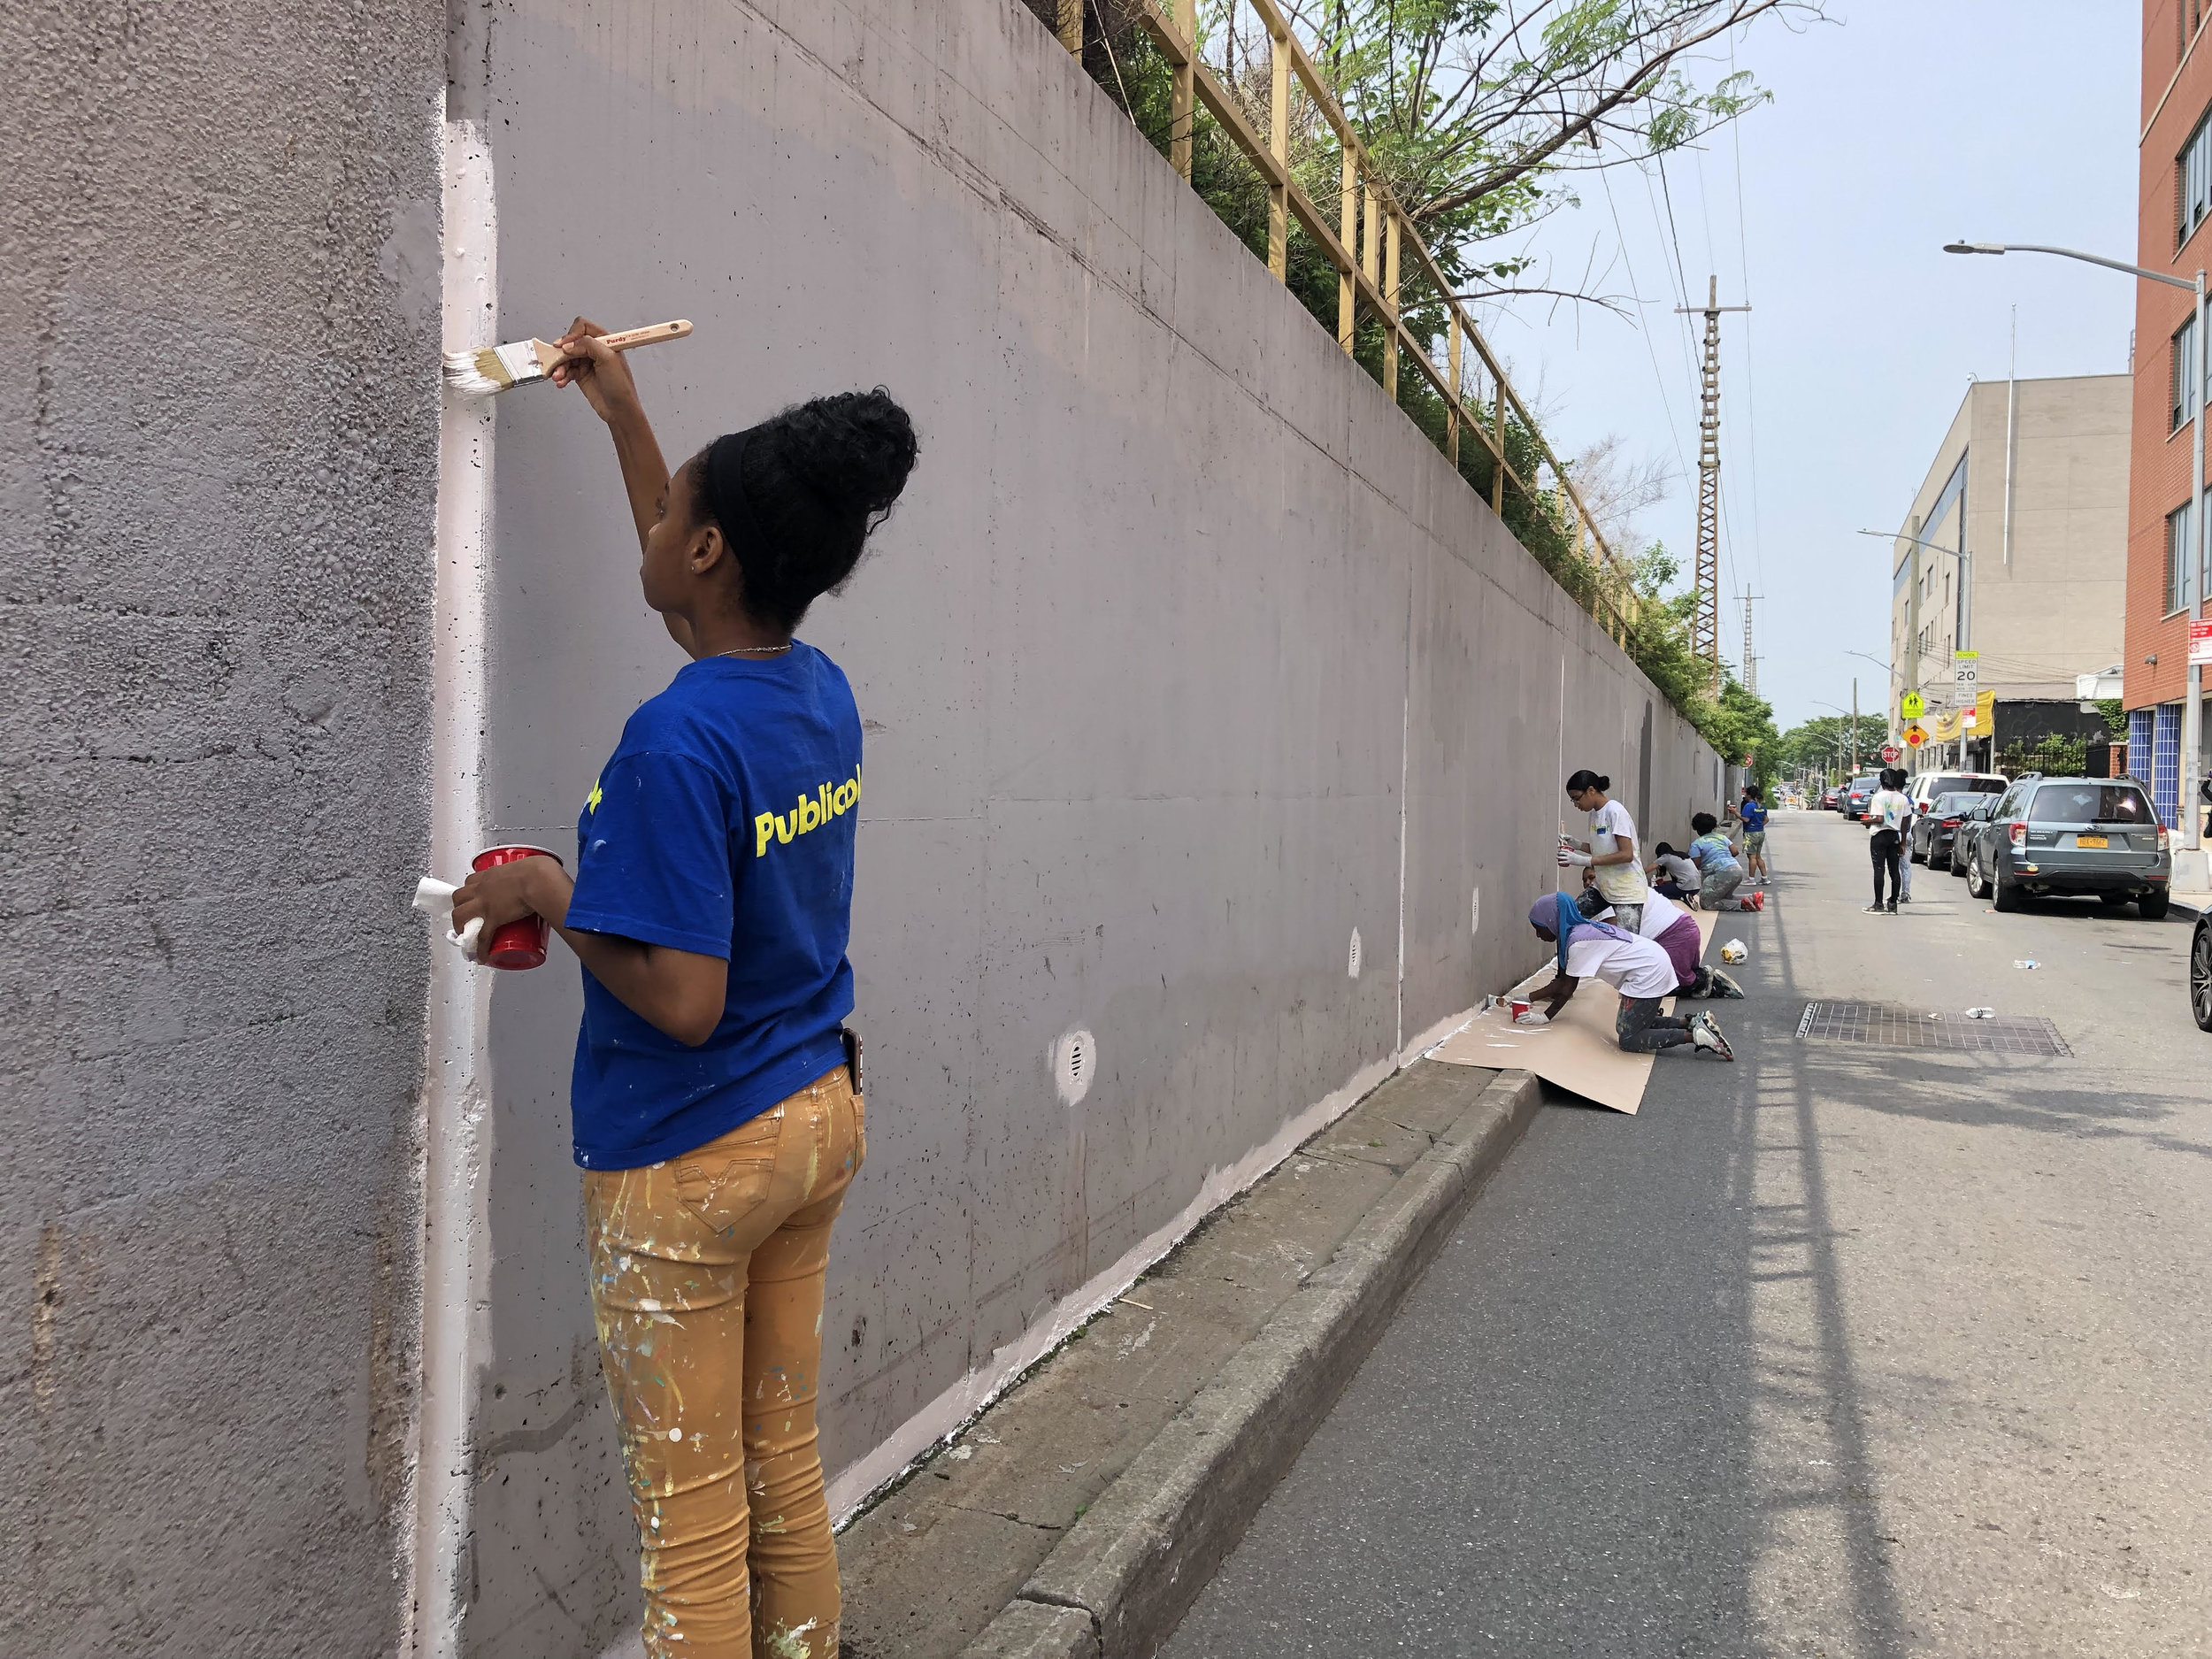 Student volunteers from Publicolor Paint Club beautify walls in Corona. Photo courtesy of Publicolor.